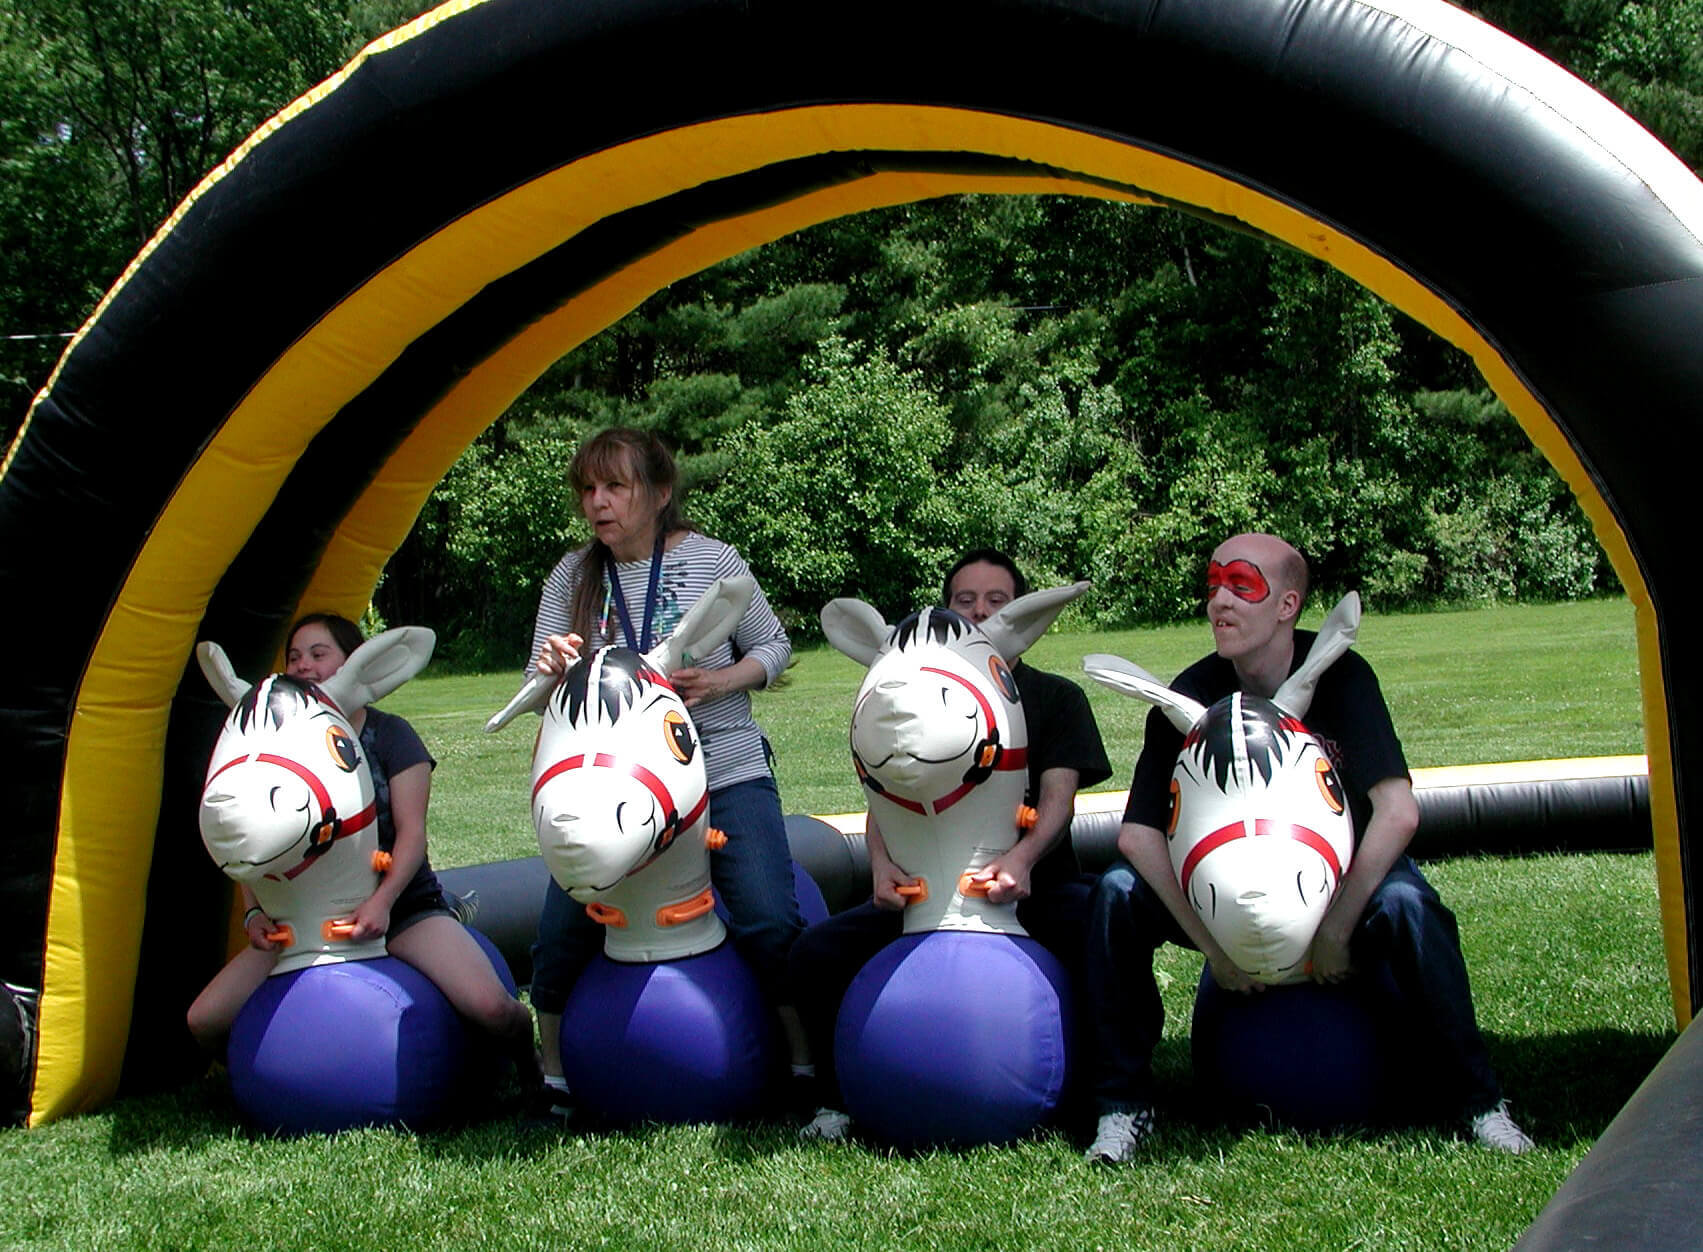 Participants riding on inflatable horses